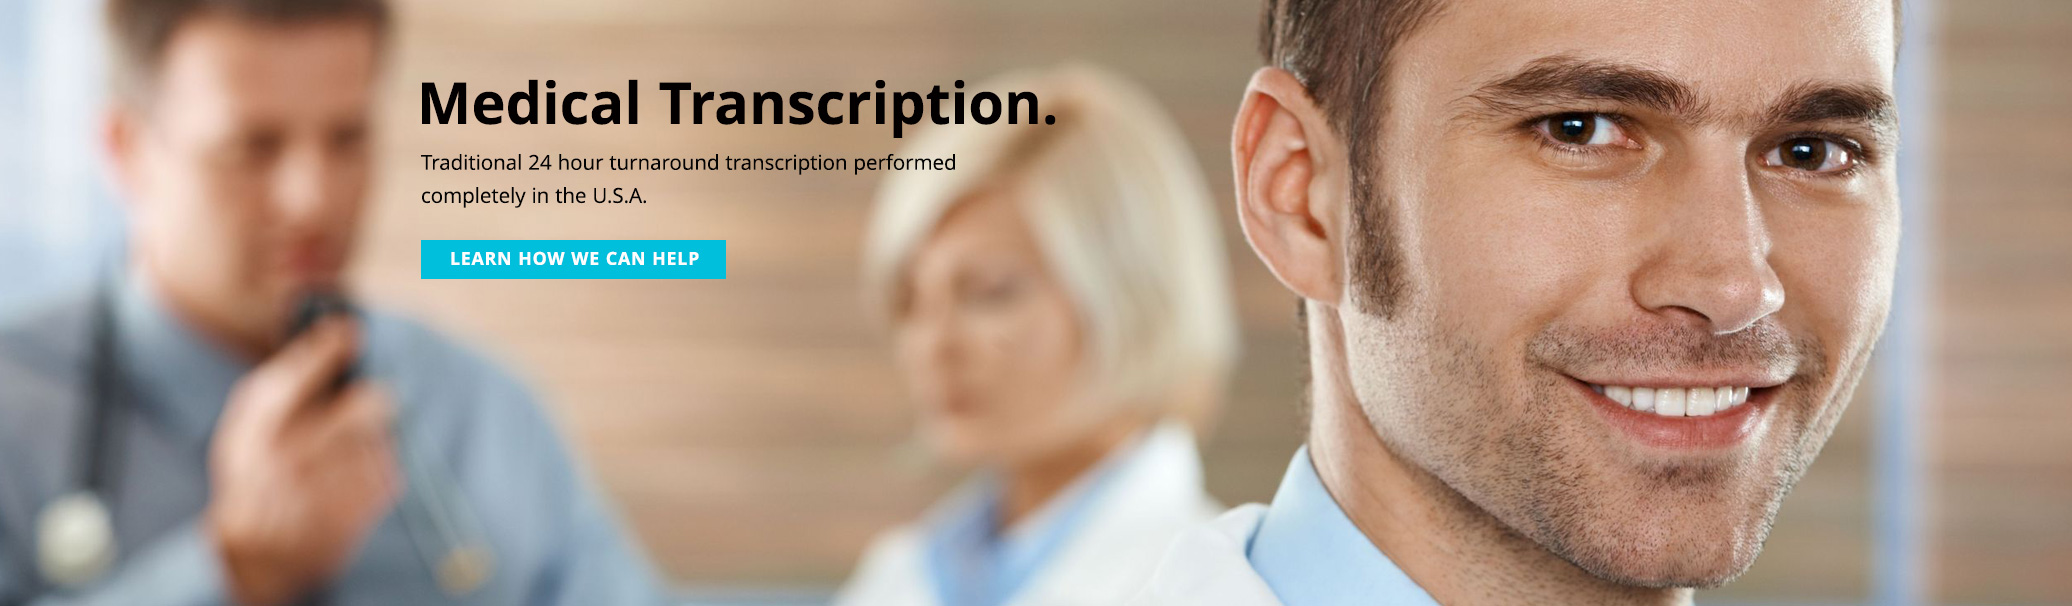 U.S.A. Based Medical Transcribers